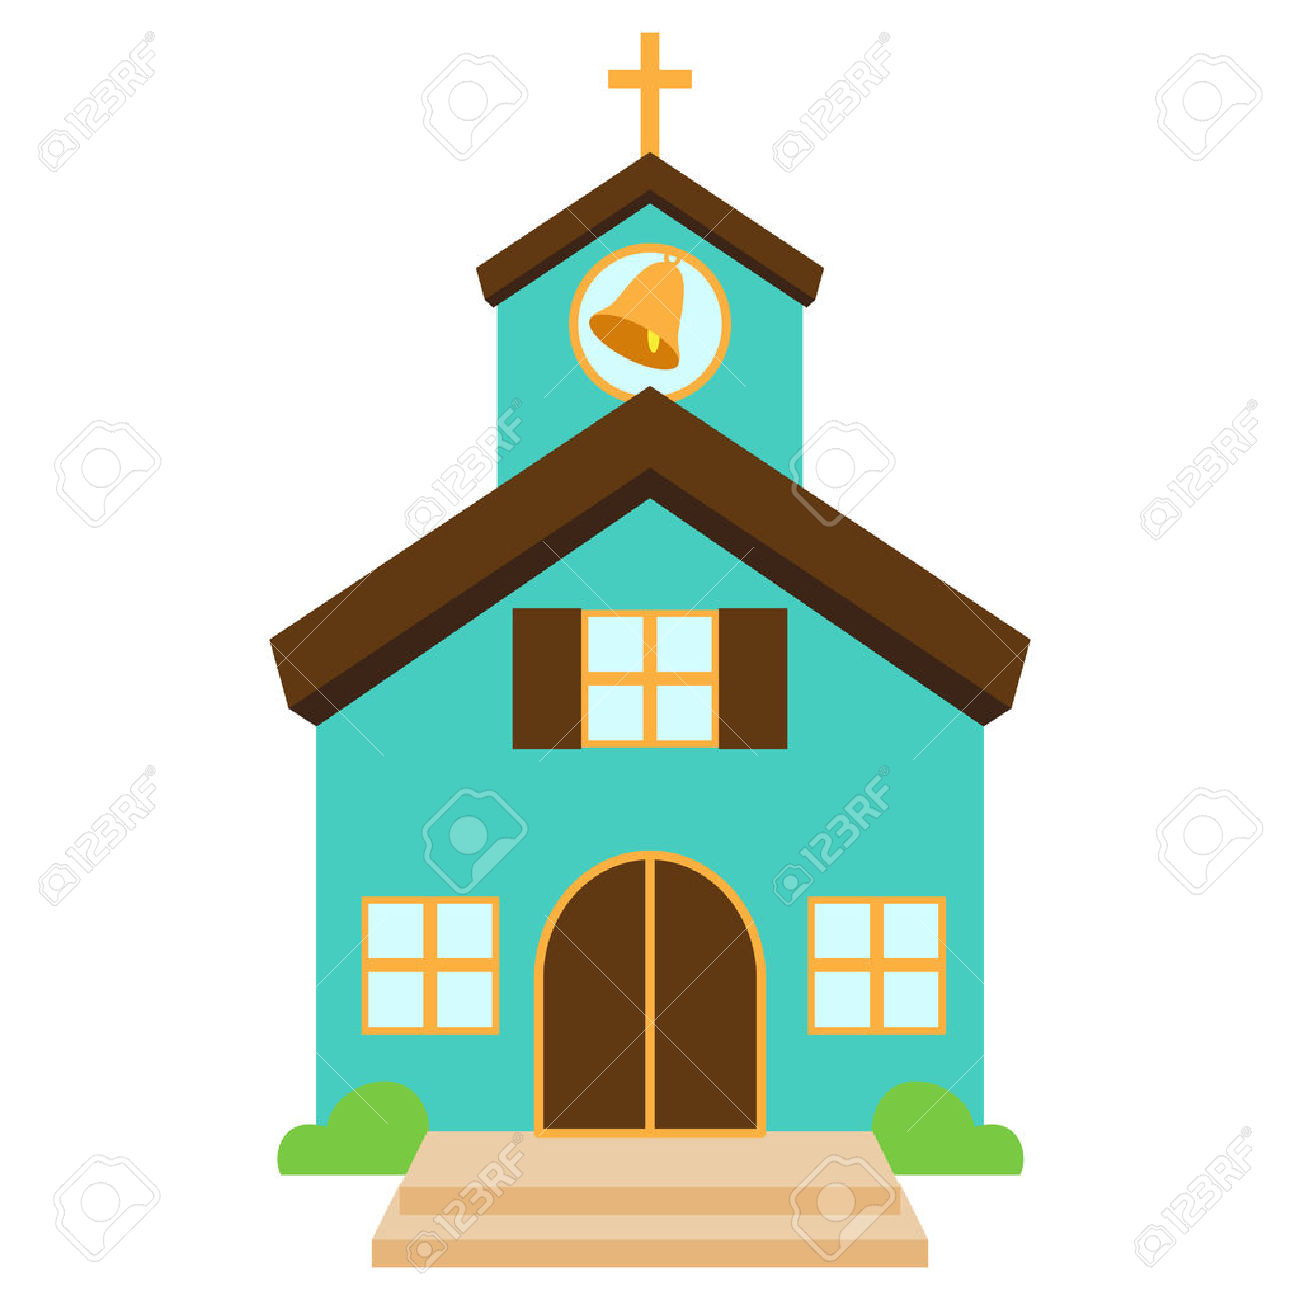 hight resolution of 1300x1300 steeple clipart church construction